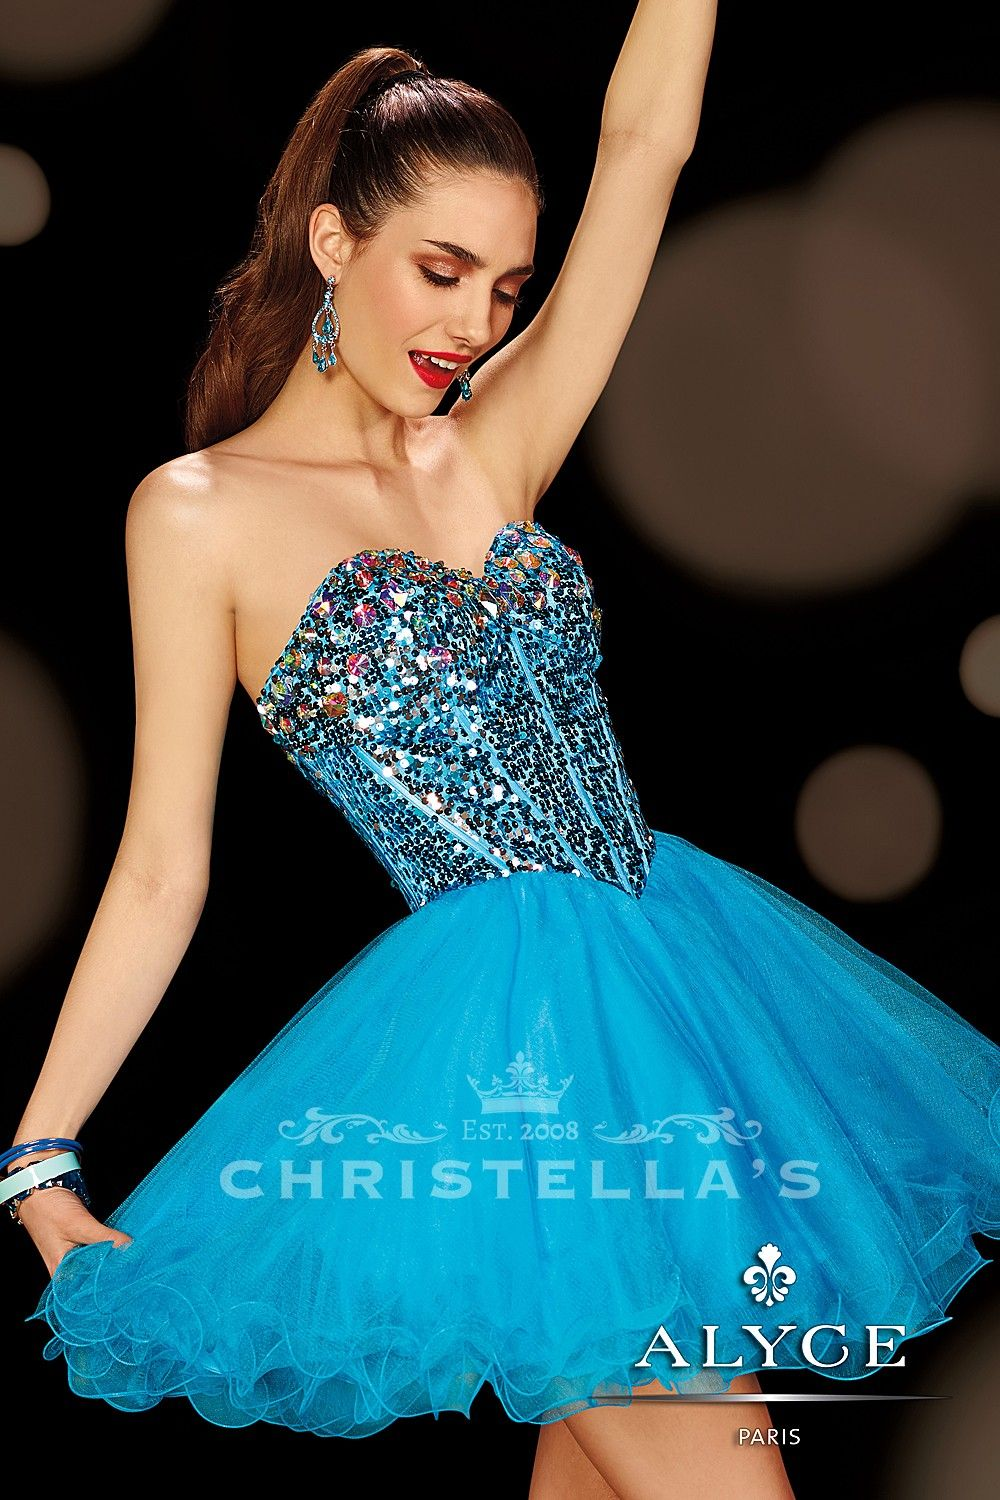 Party all night long in this playful short dress full of sparkle and ...